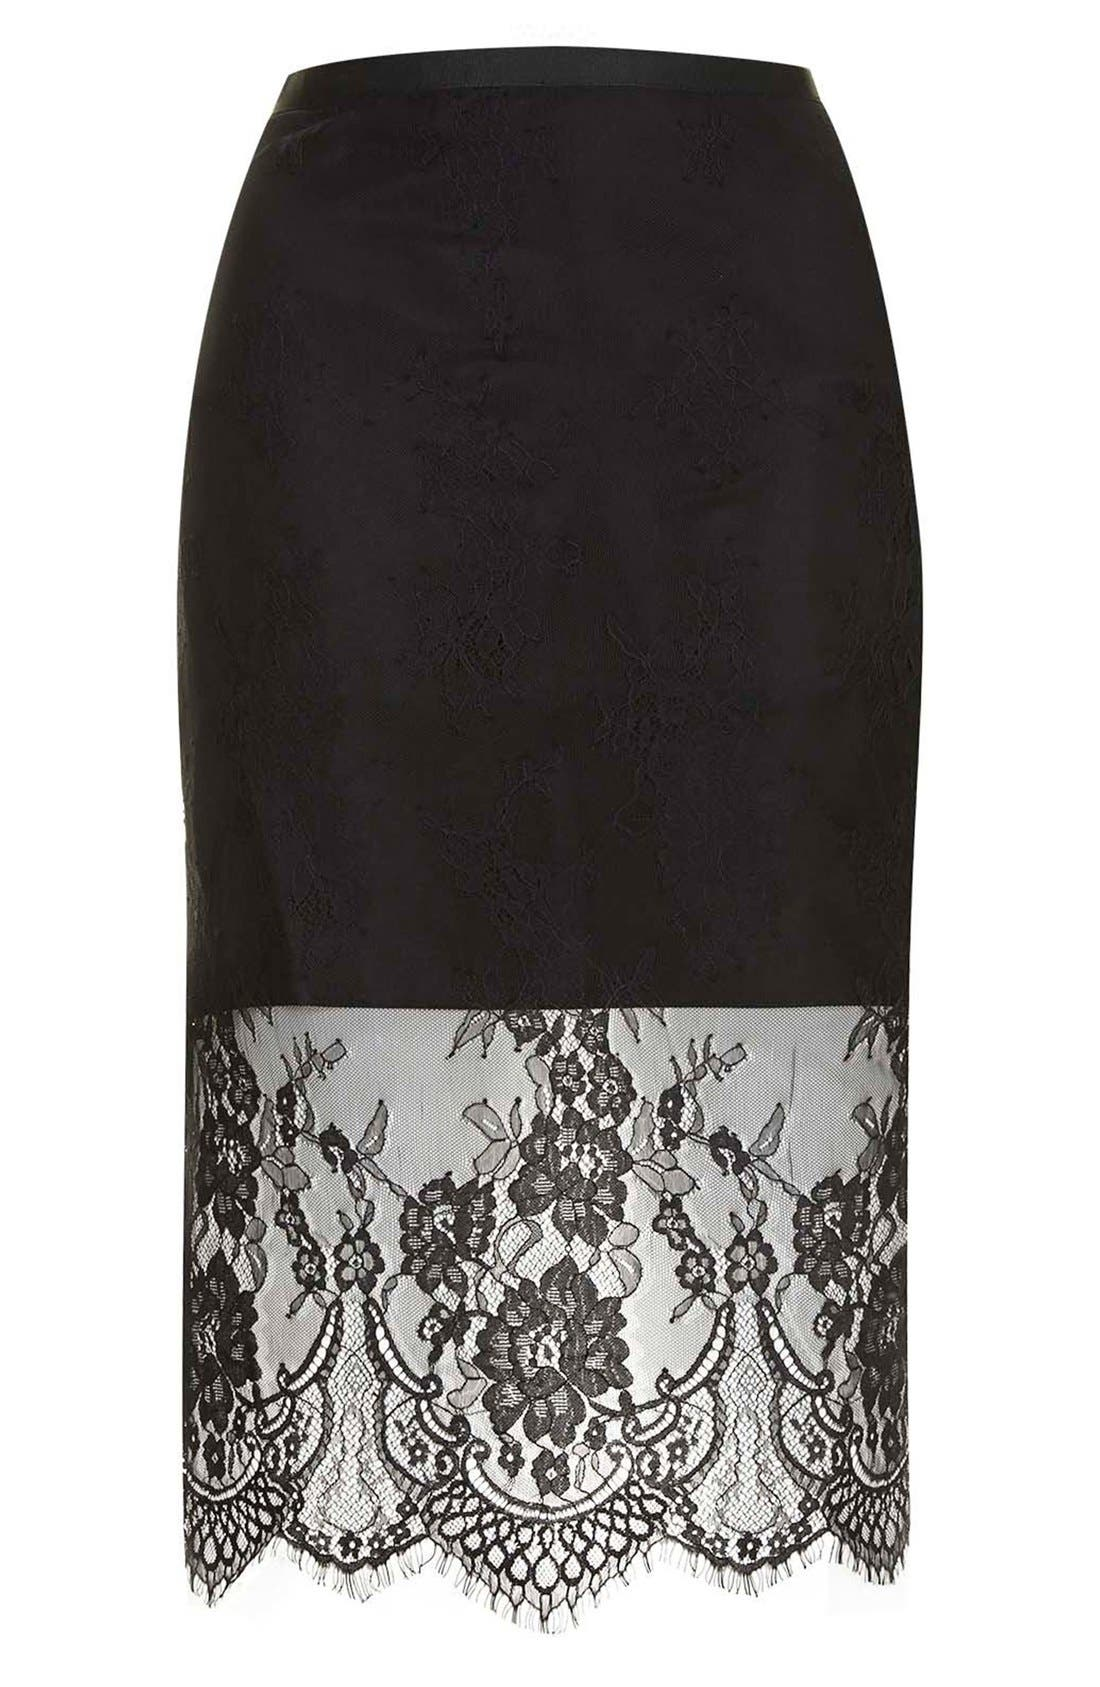 TOPSHOP,                             Lace Overlay Pencil Skirt,                             Alternate thumbnail 3, color,                             001